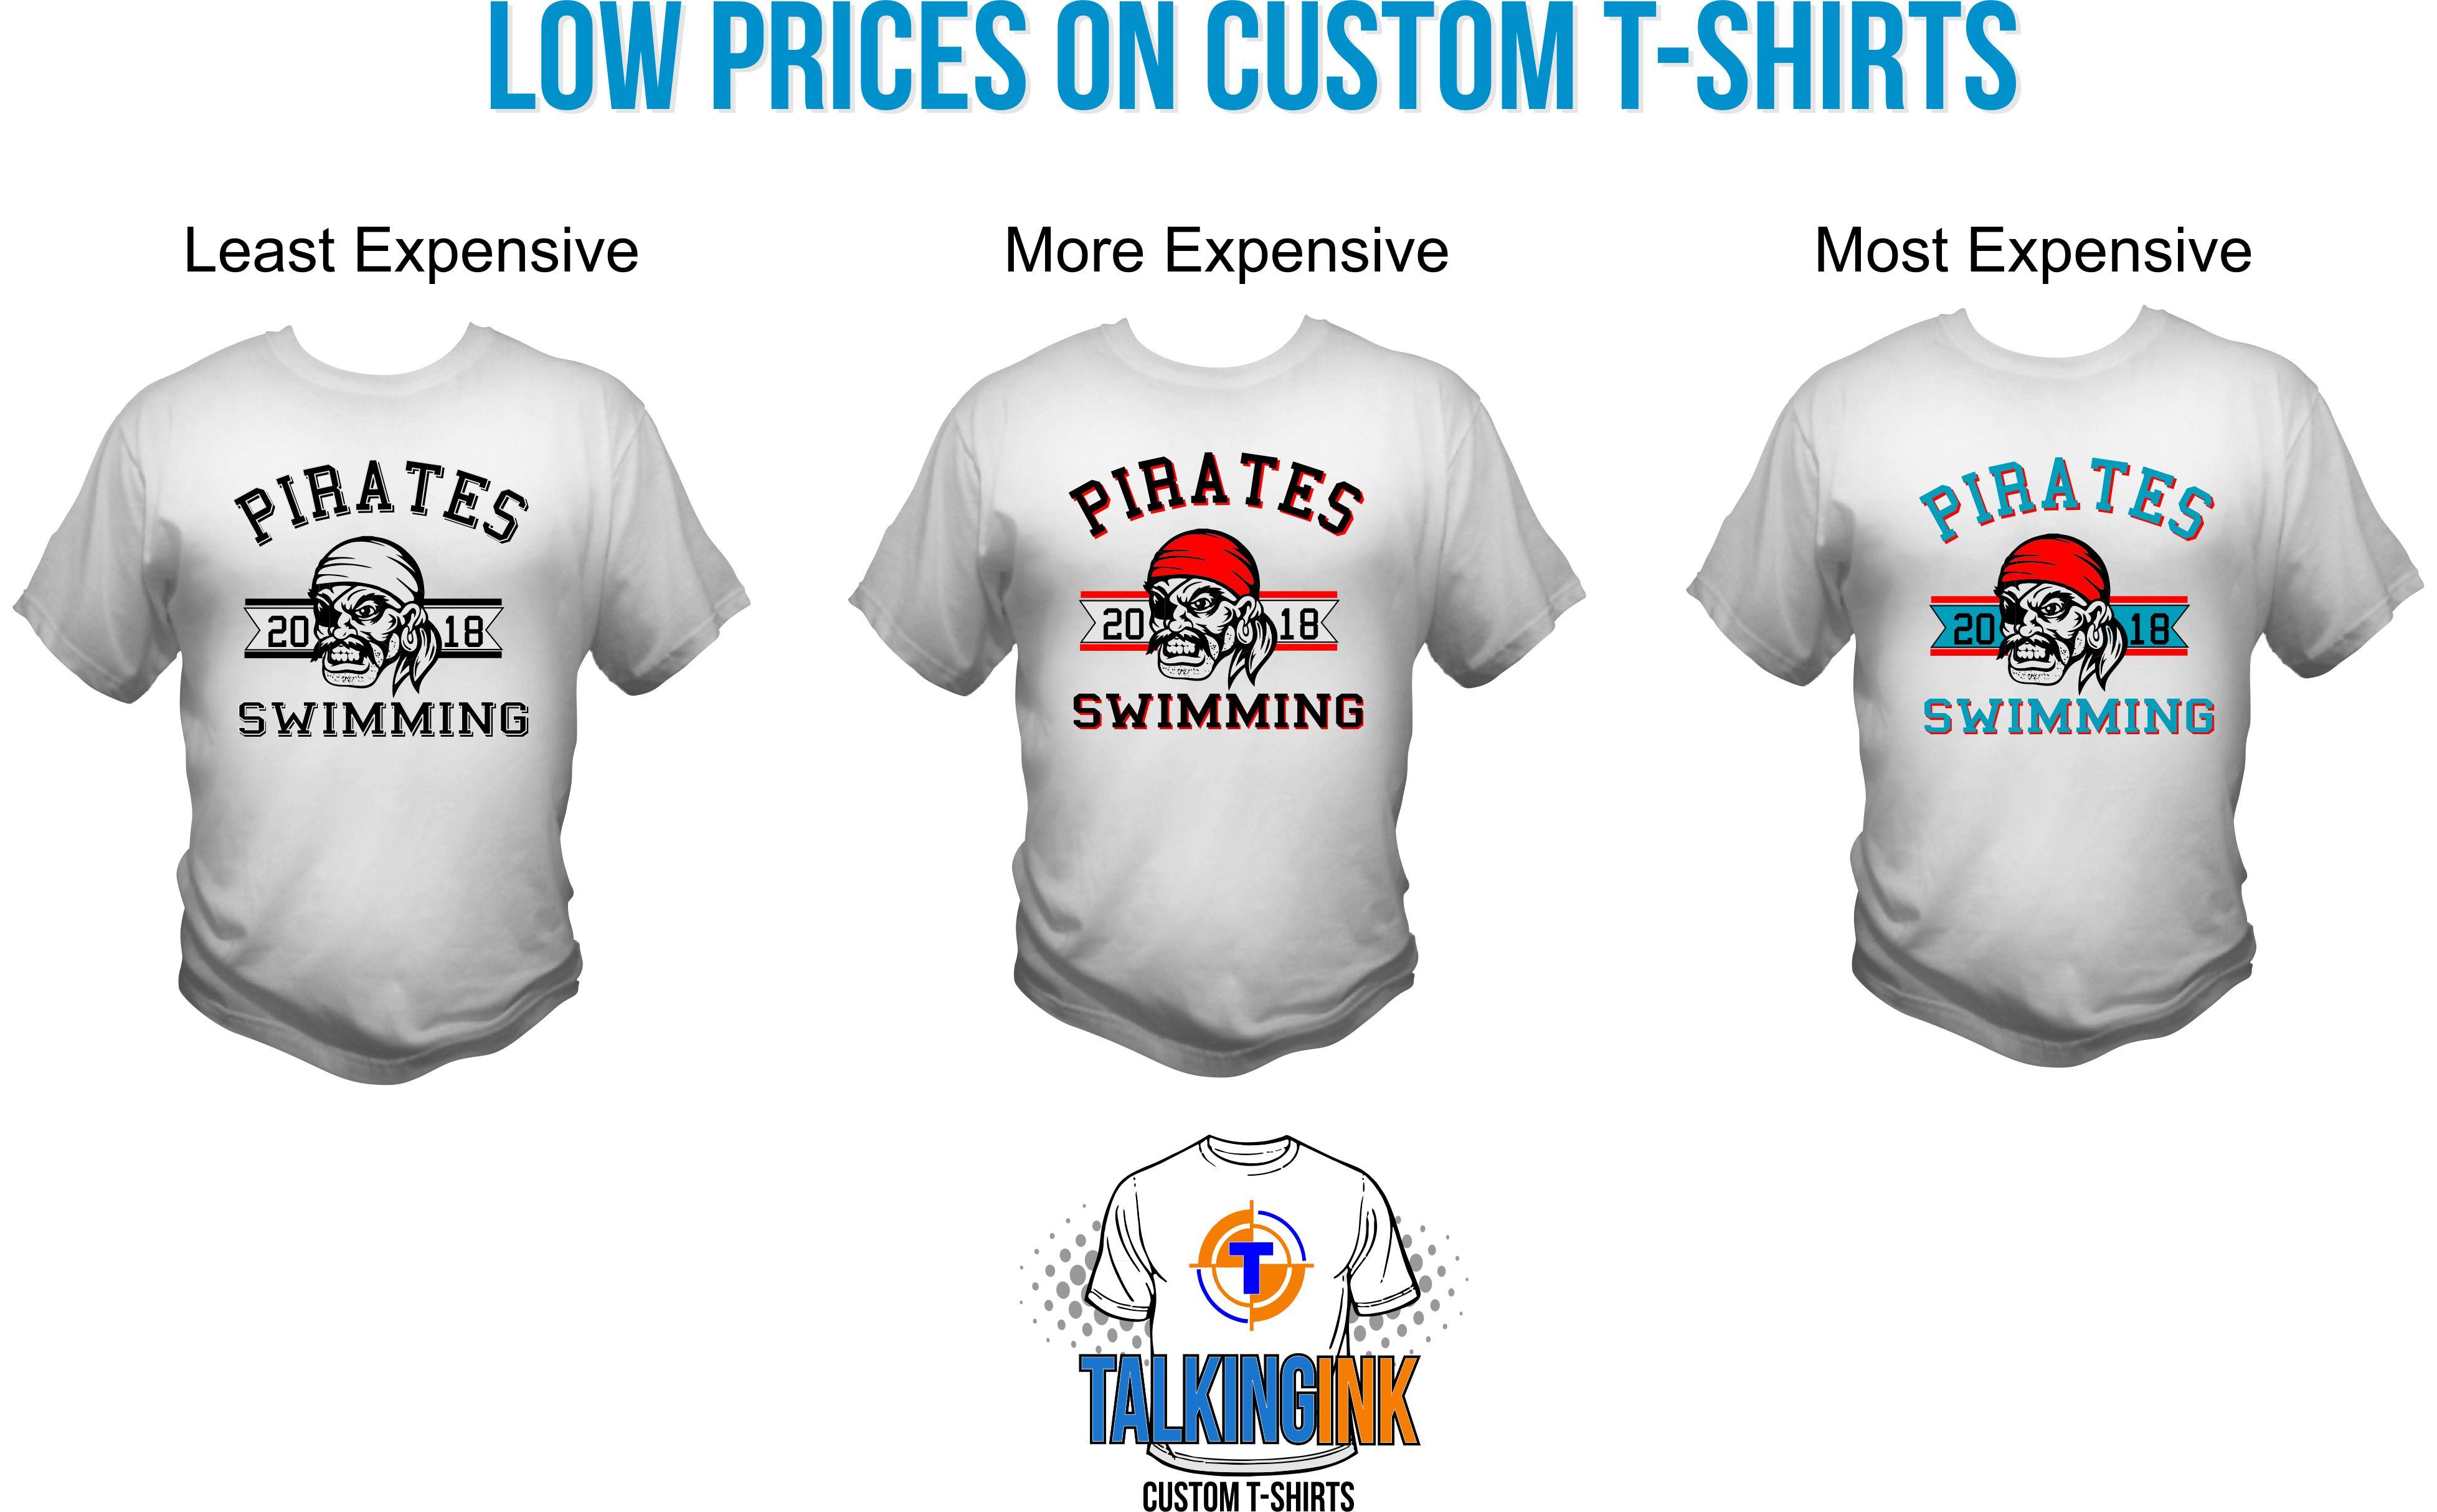 low prices on custom t-shirts